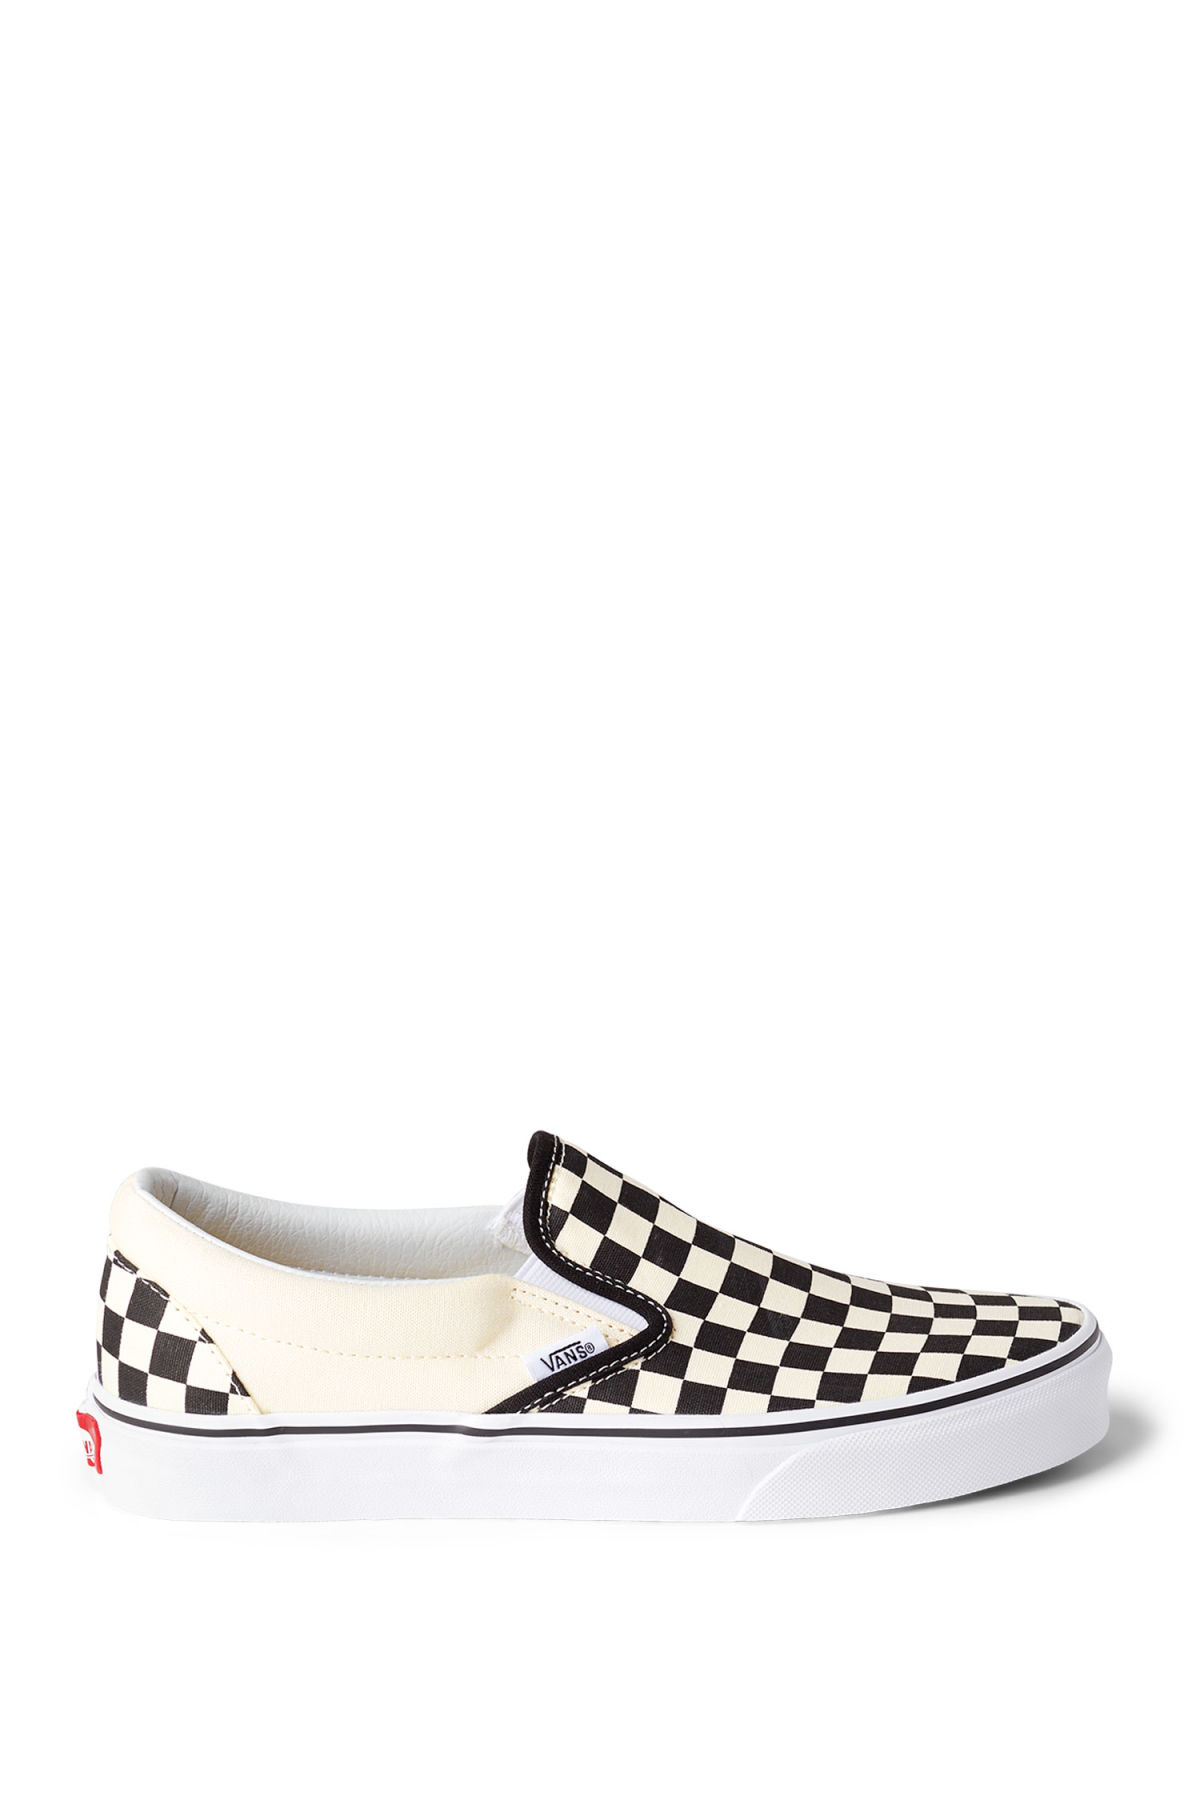 141824d970 Front image of Weekday classic slip-on shoes in white